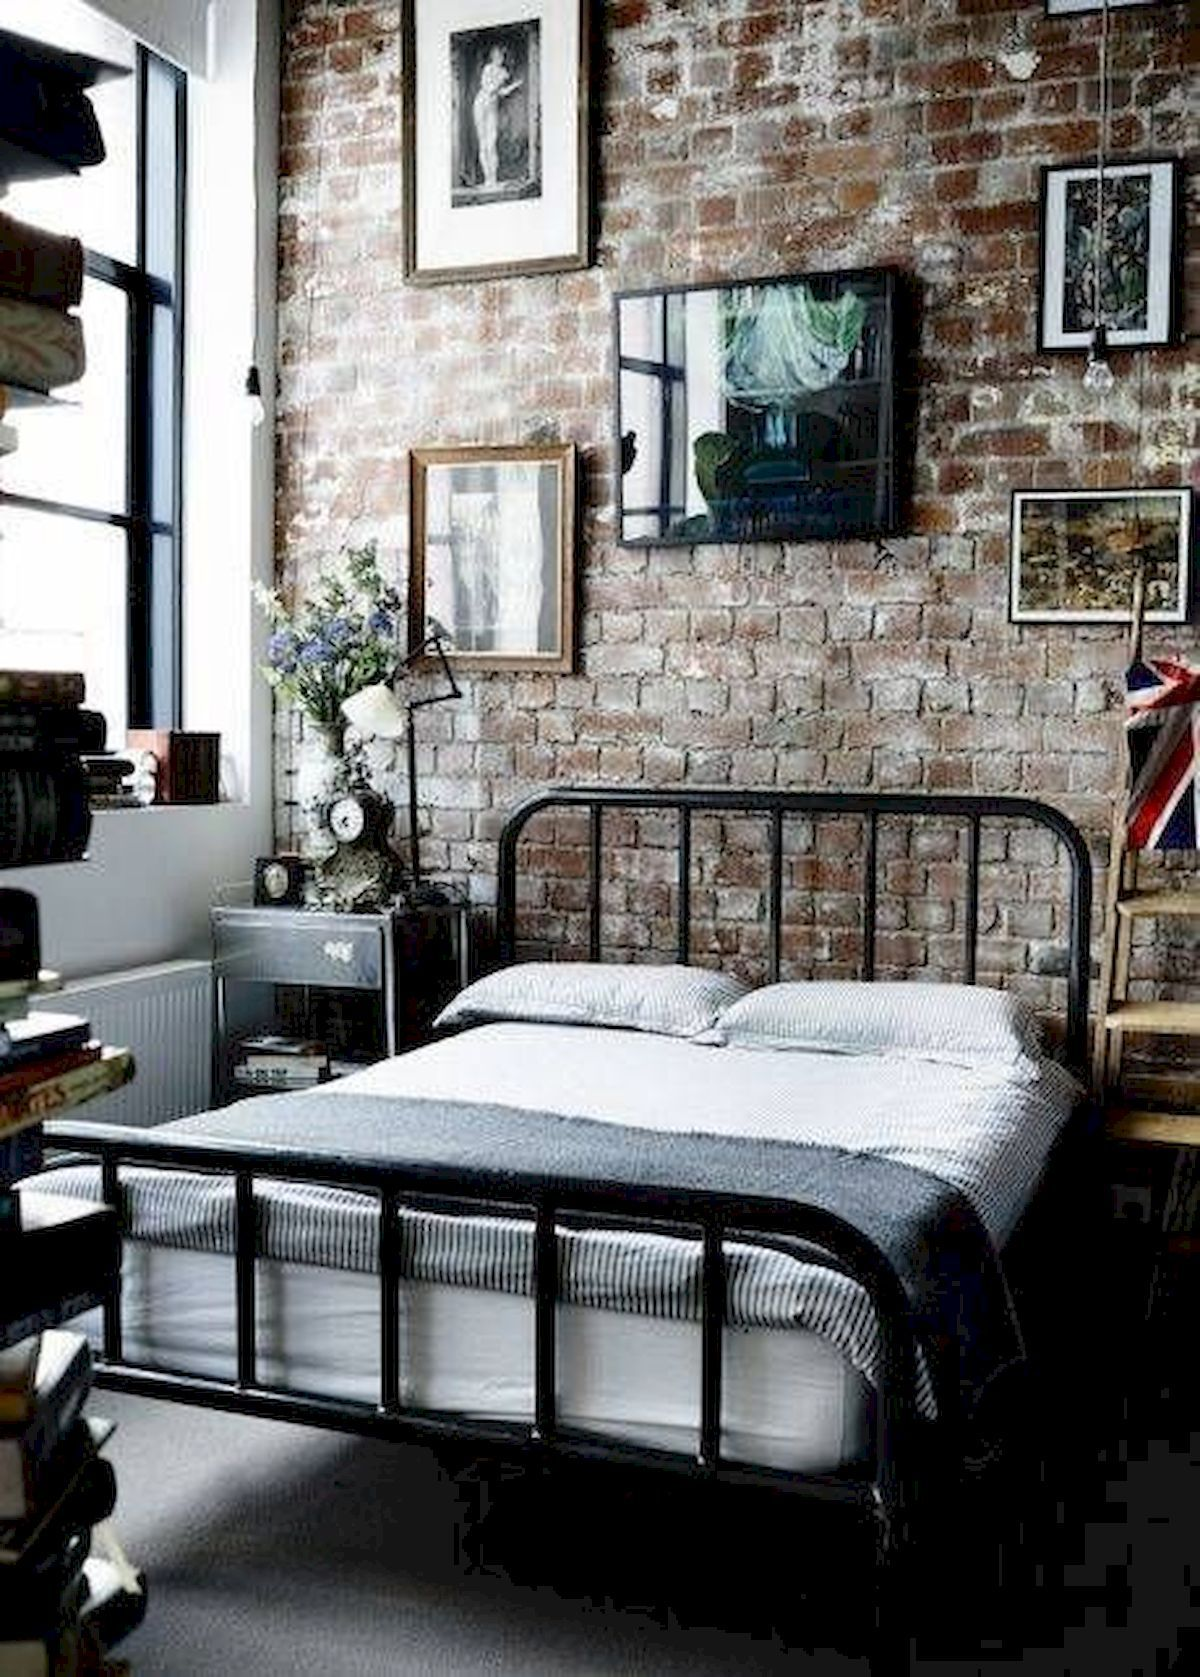 Adorable 40 Awesome Artsy Bedroom Decor Ideas Source Https Worldecor Co